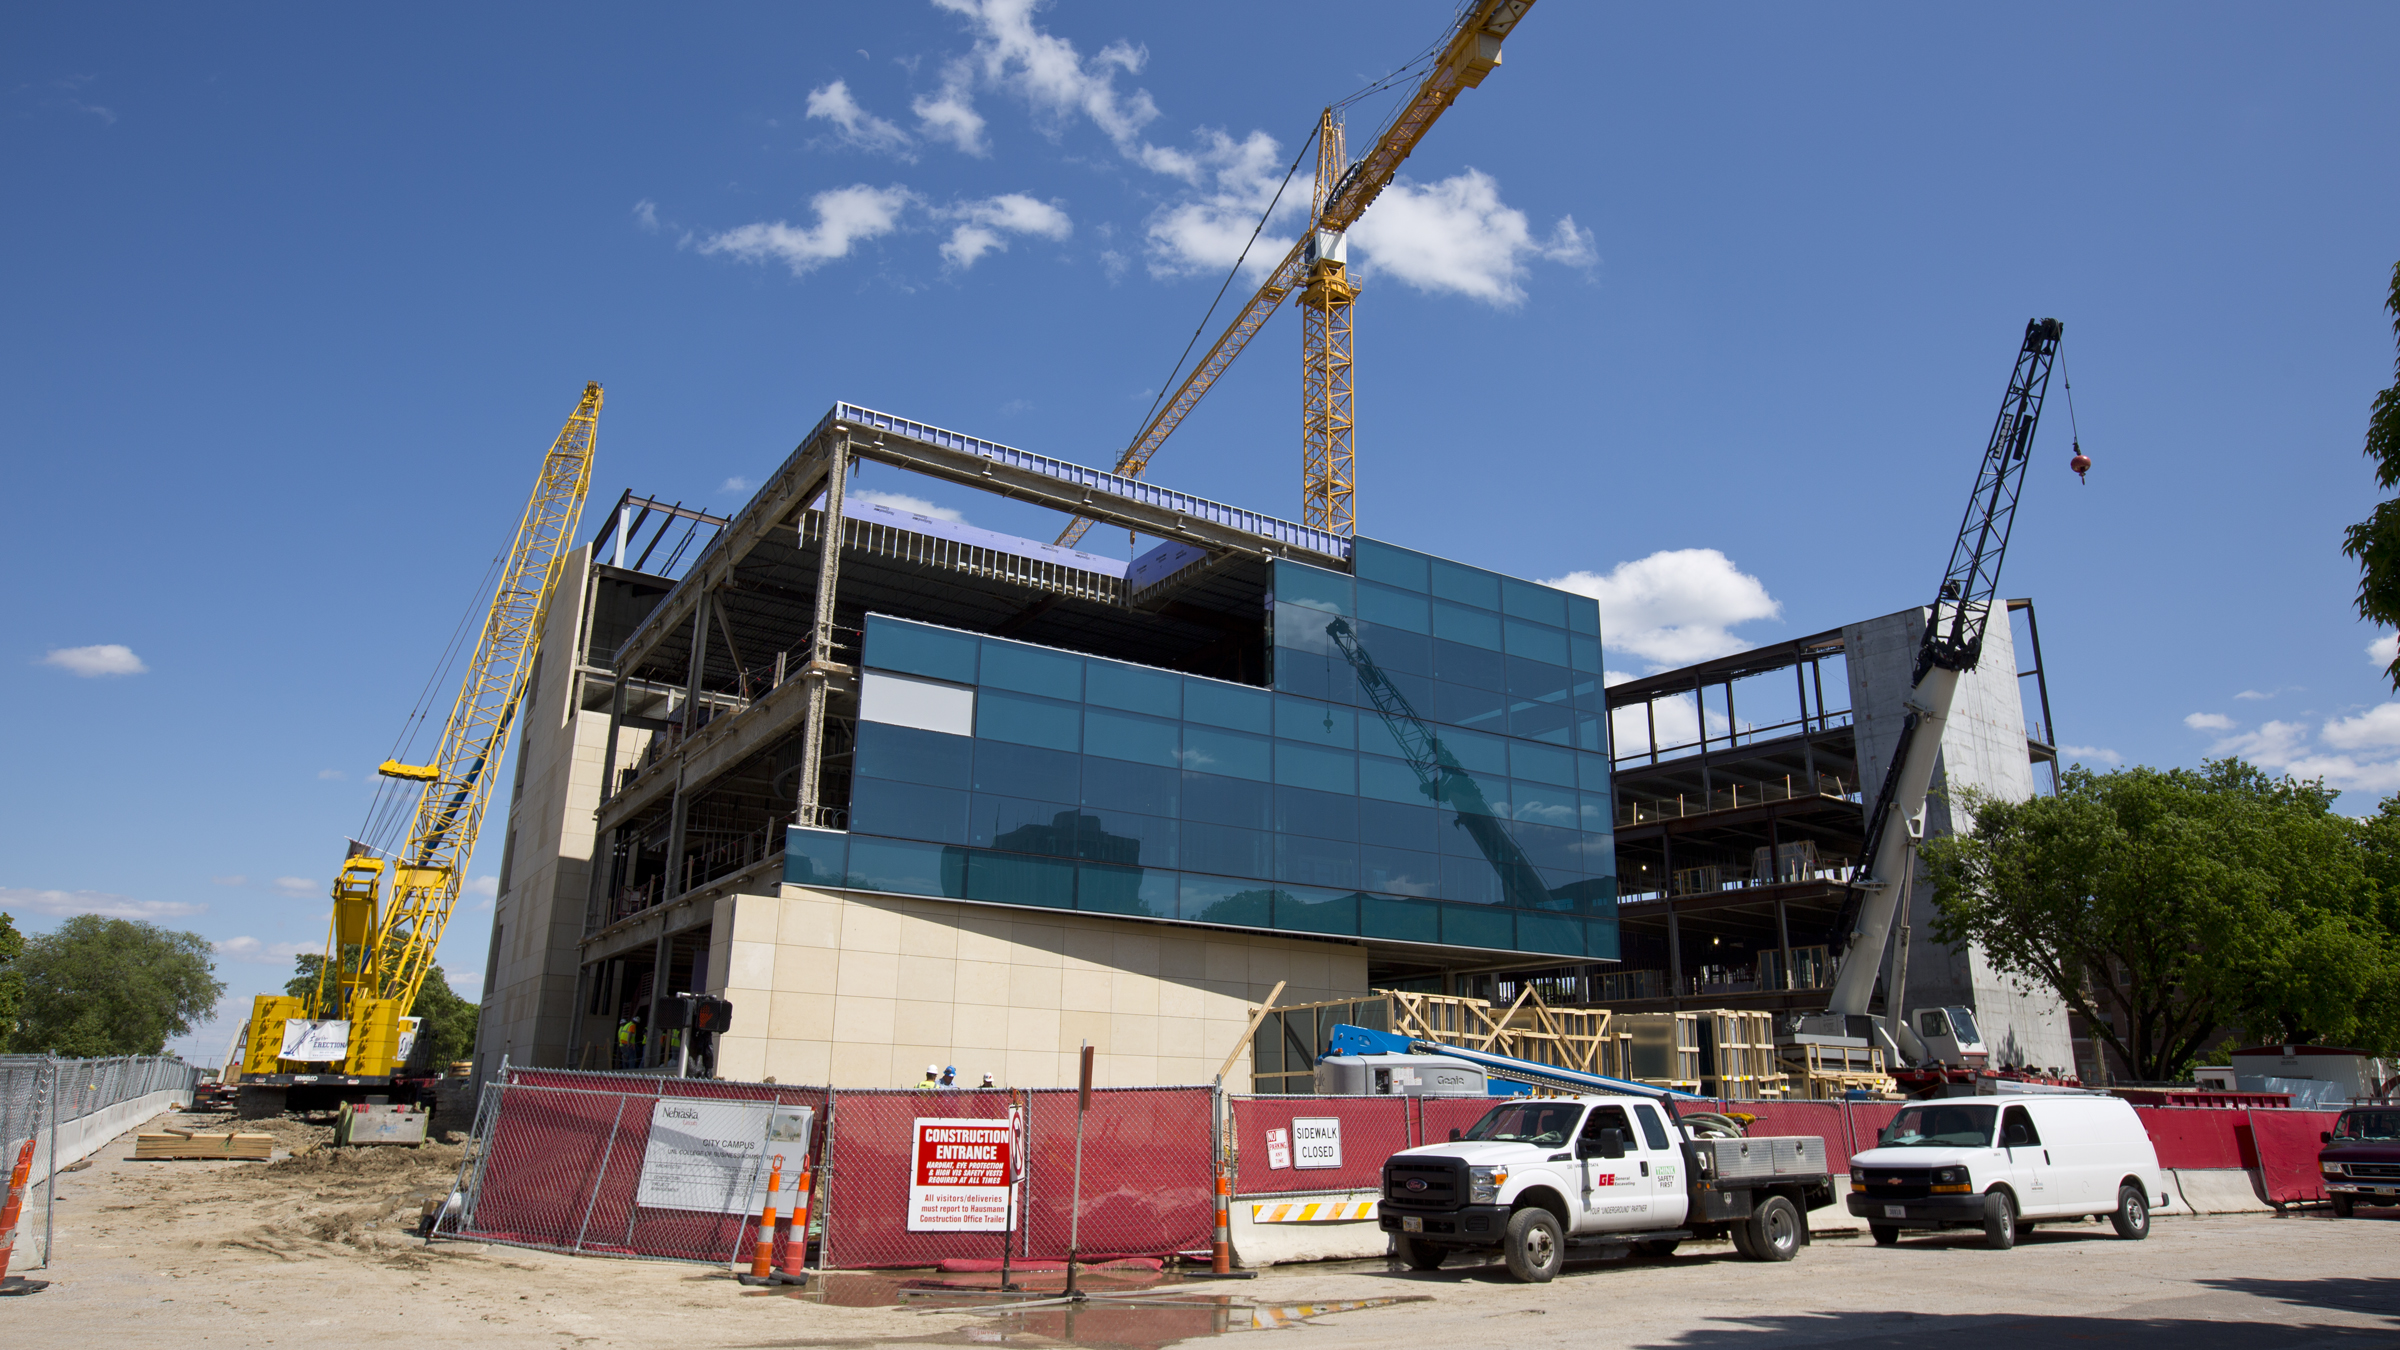 Construction Project Management: Large Projects Dominate Summer Construction Schedule